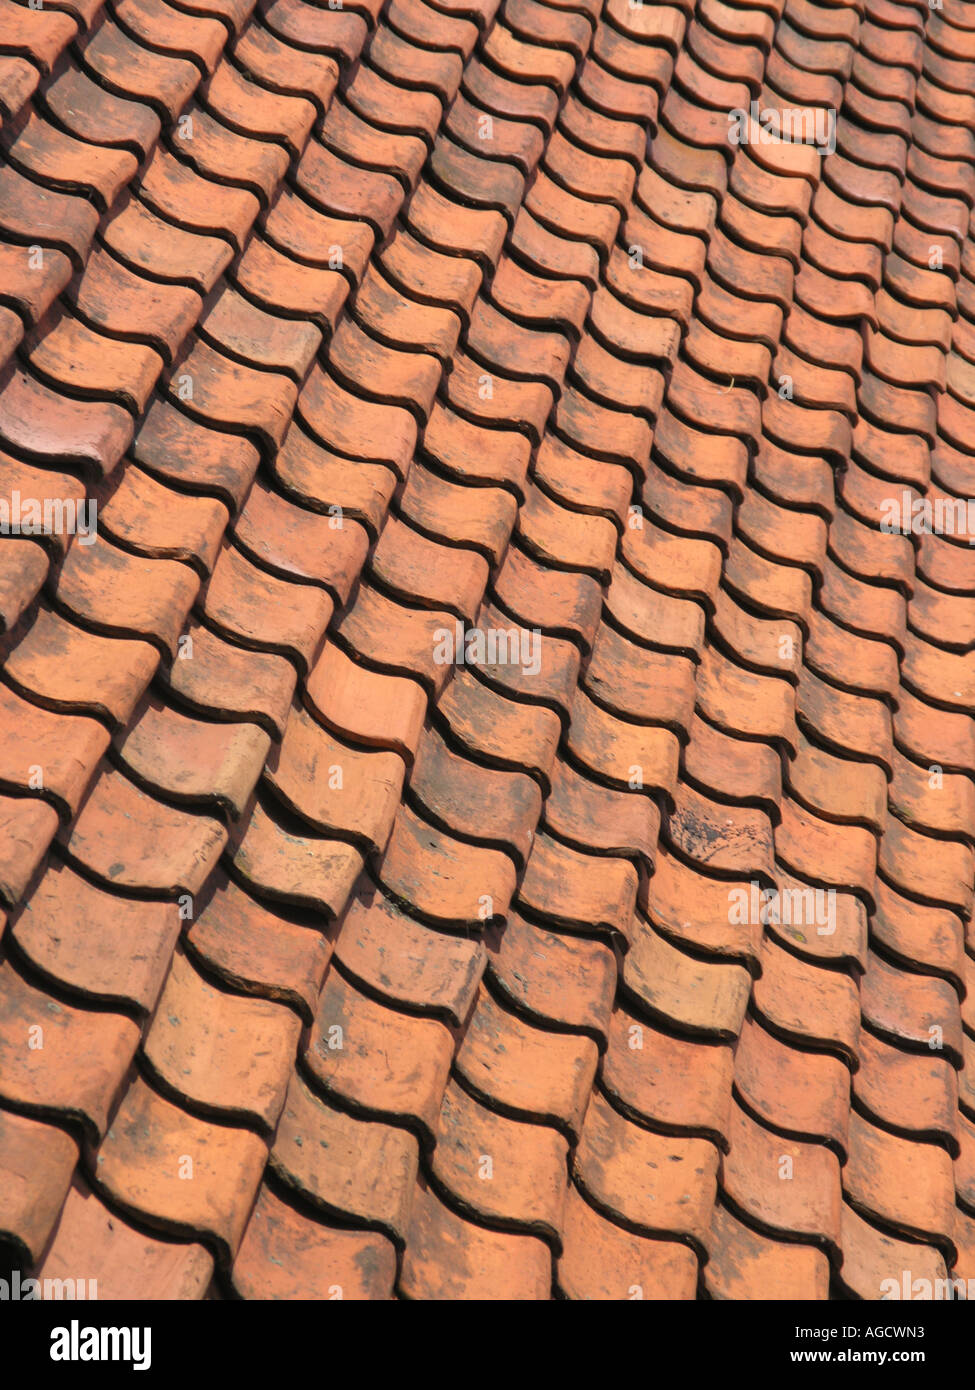 Terracotta roof tiles dutch terracotta roof tiles dutch terracotta roof tiles dailygadgetfo Image collections